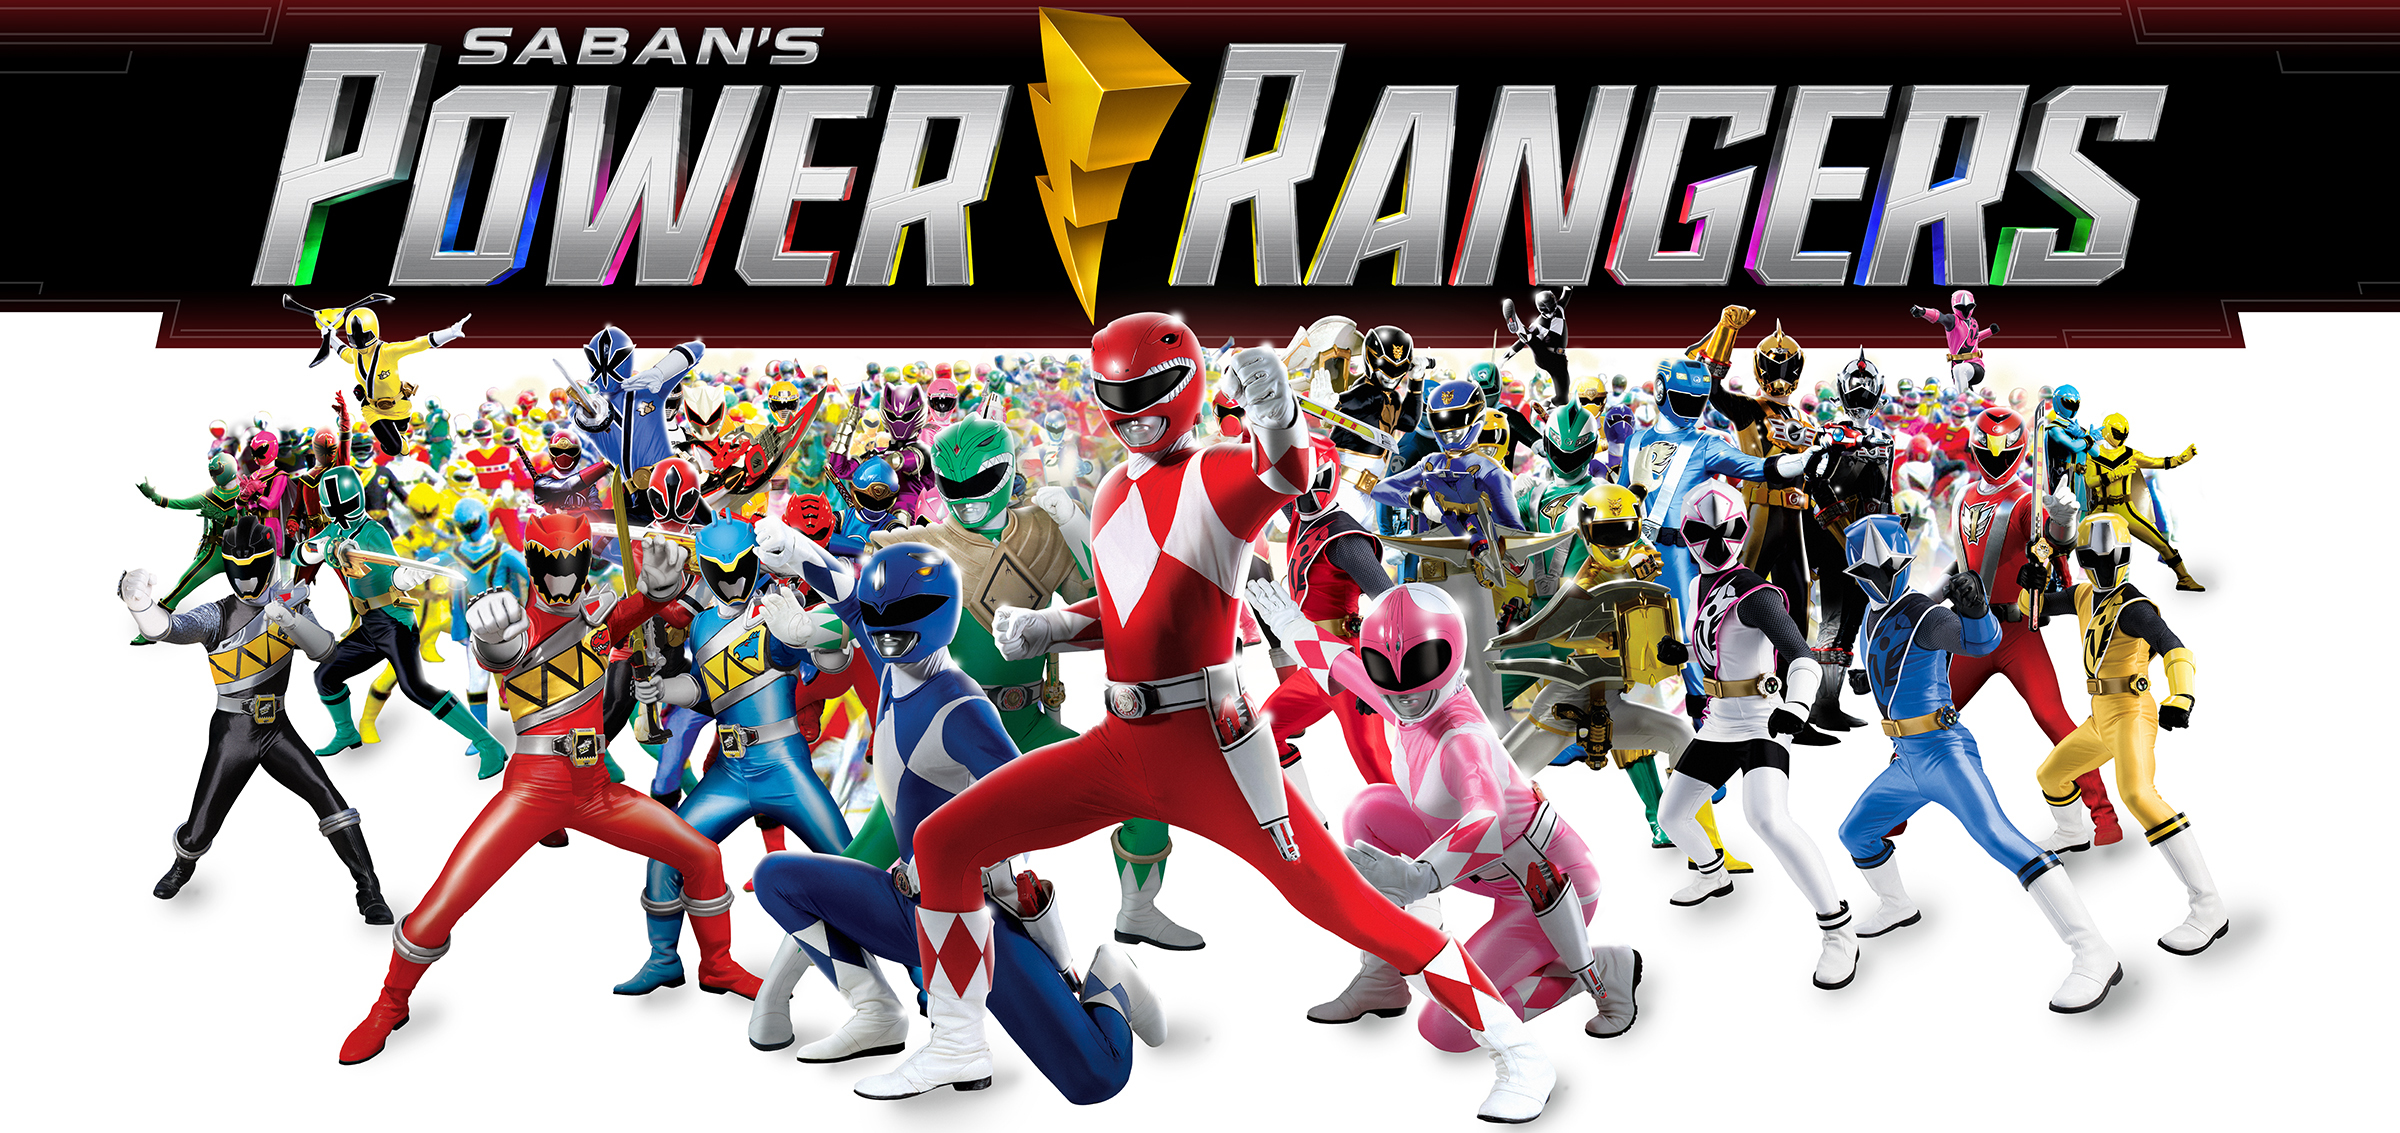 Power Rangers Acquired By Hasbro